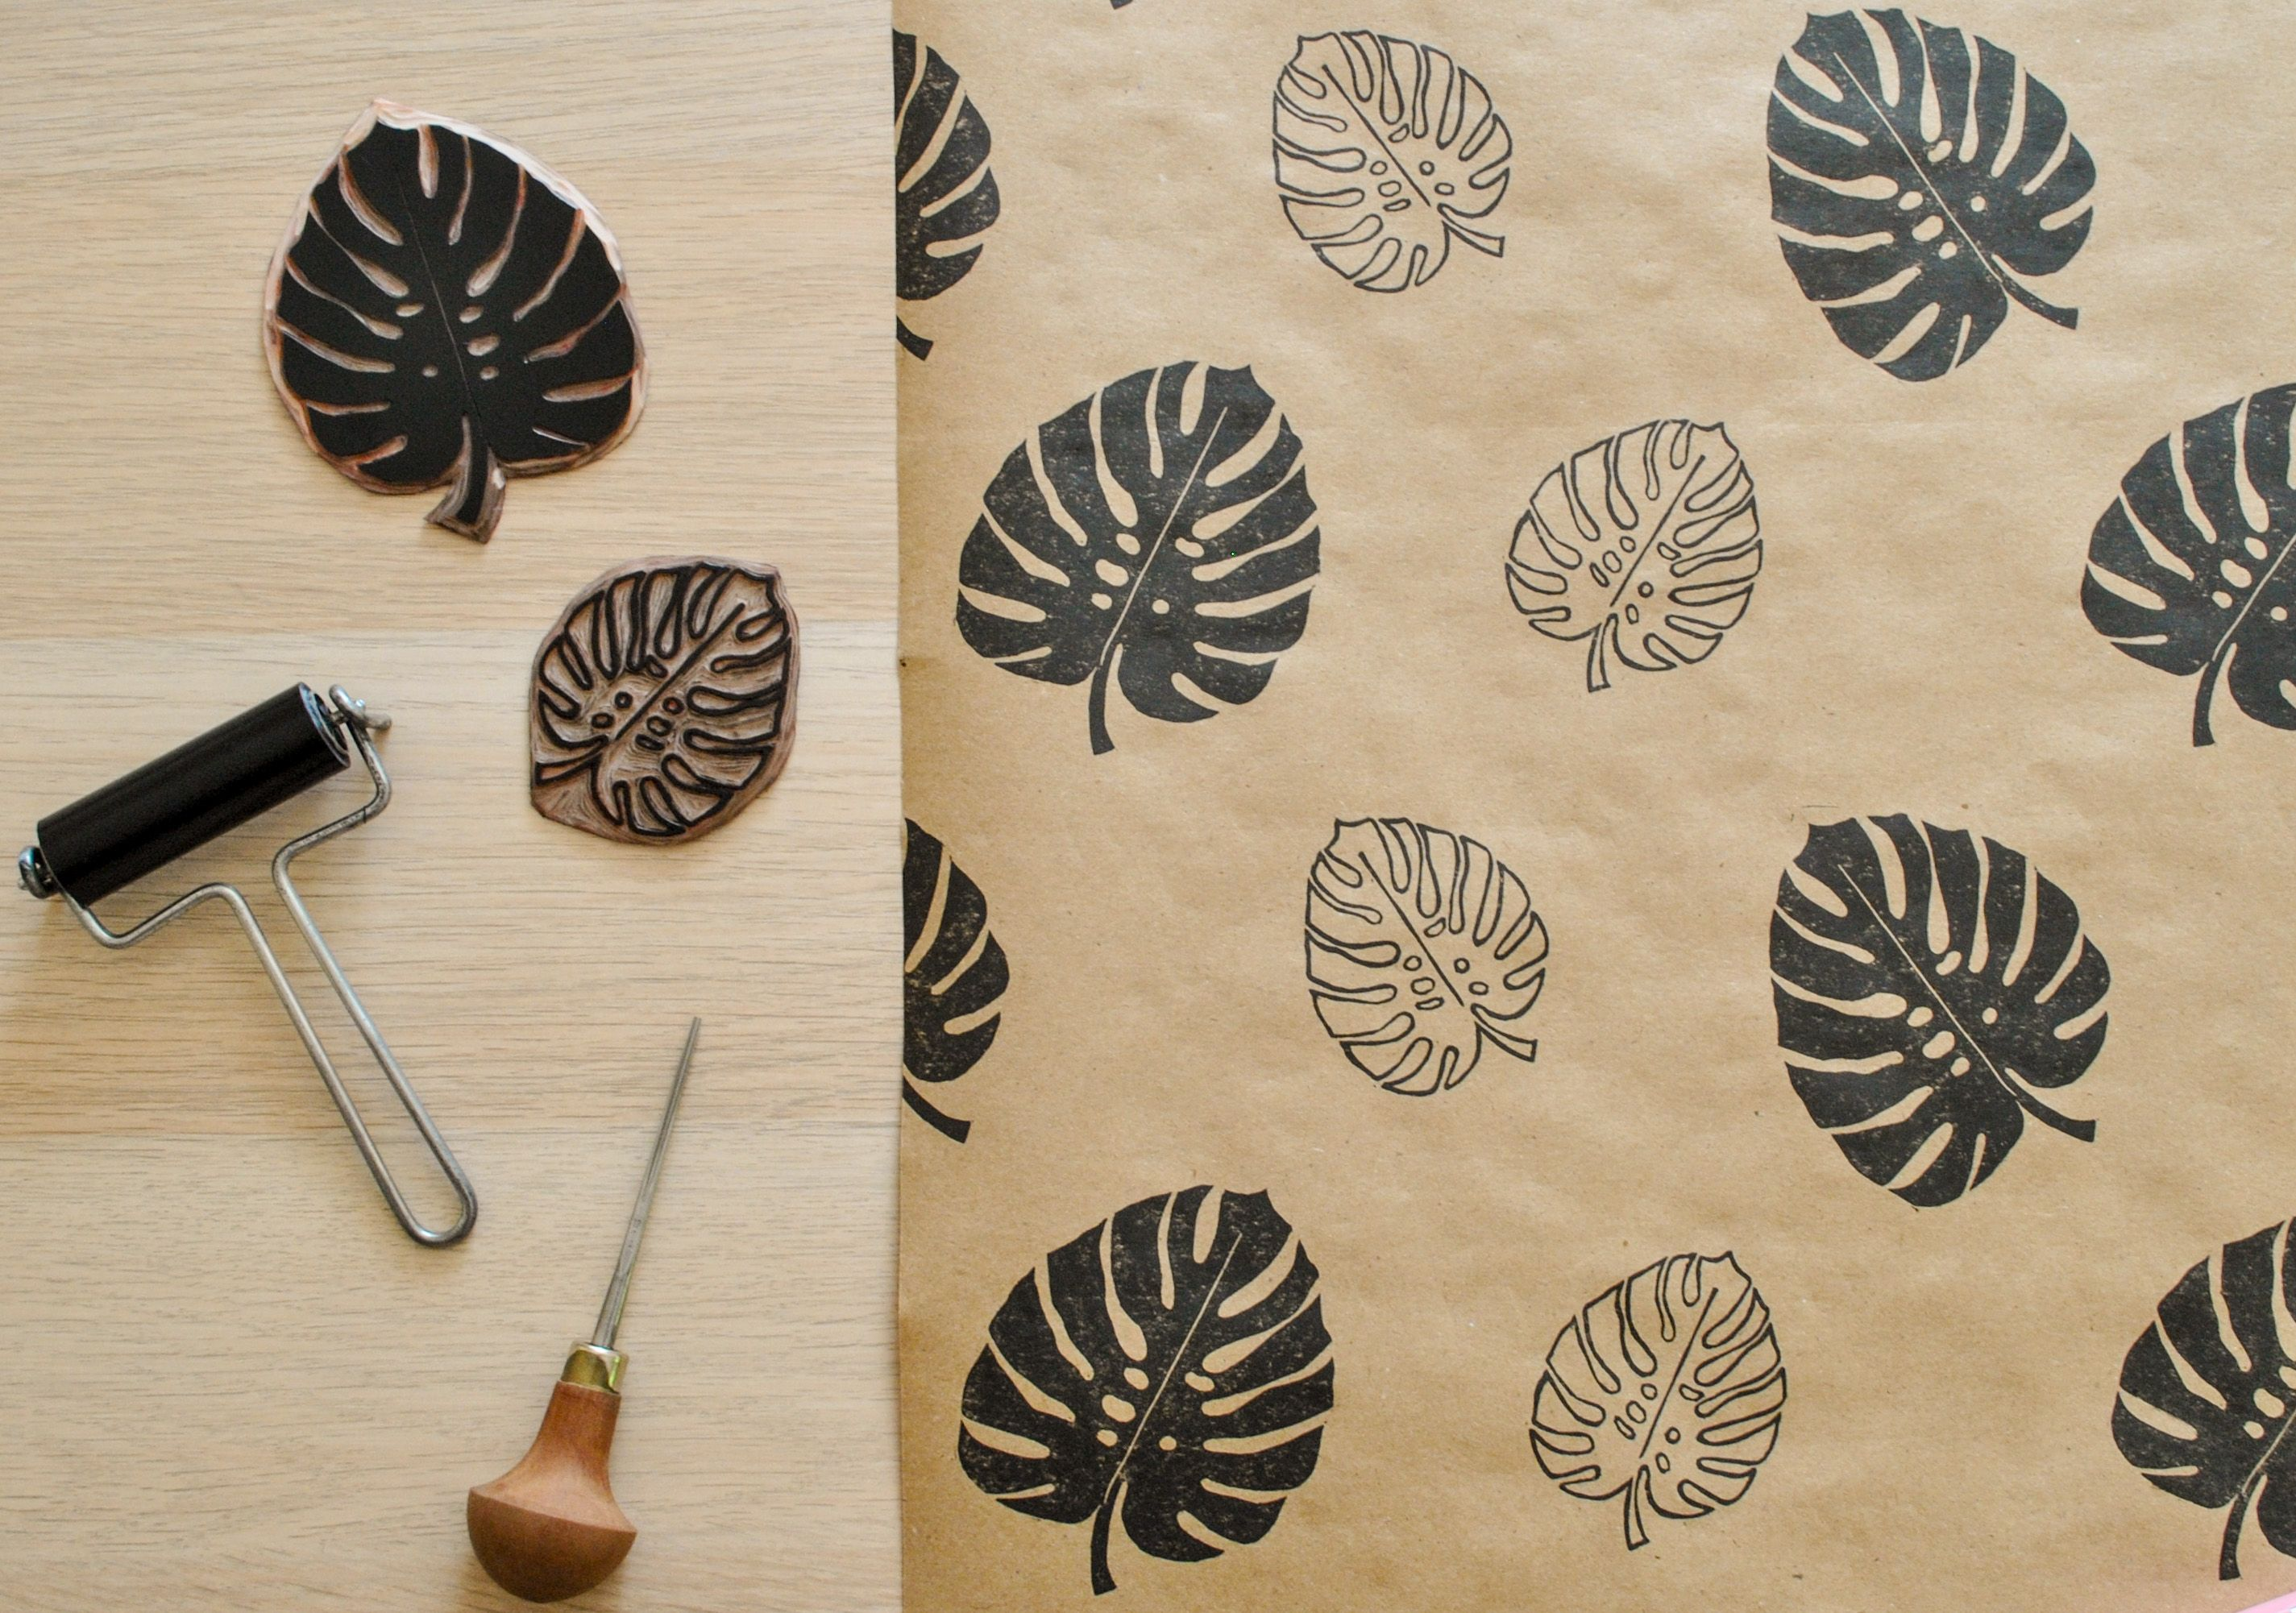 Hand Printed Wrapping Paper Sheet Featuring An Original Lino Printed Monstera Leaf Design Delightfullych Print Wrapping Paper Handmade Stamps Bumble Bee Print